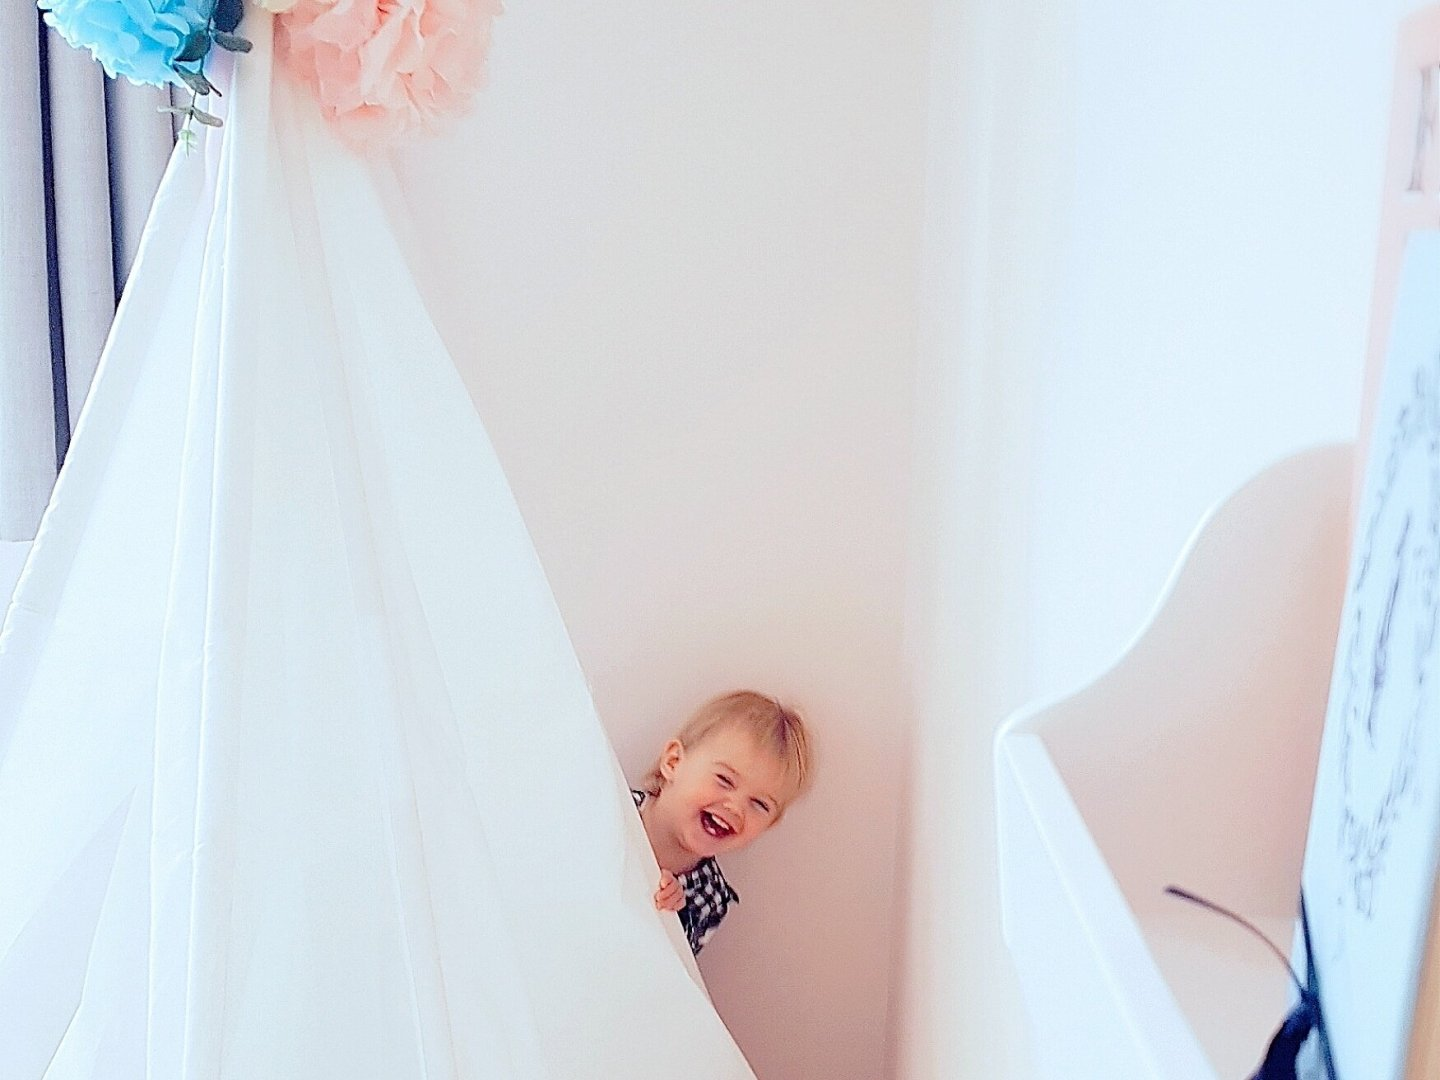 Girl in pink bedroom peeking out from behind white tipi giggling